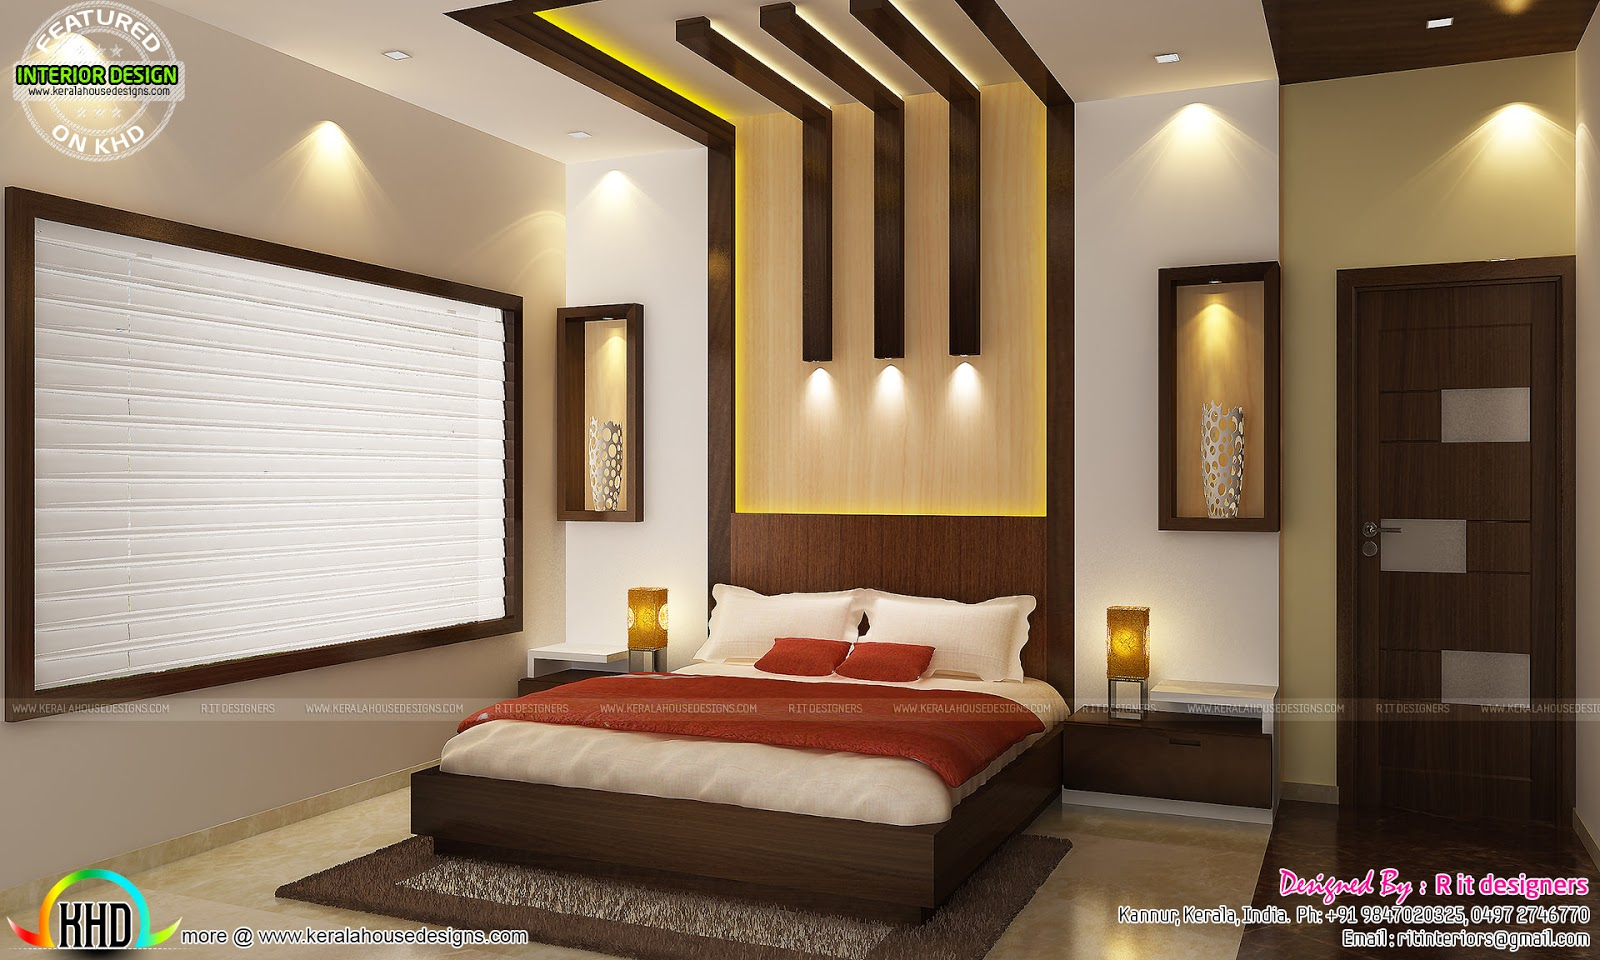 Kitchen living bedroom dining interior decor kerala for Dining room ideas kerala